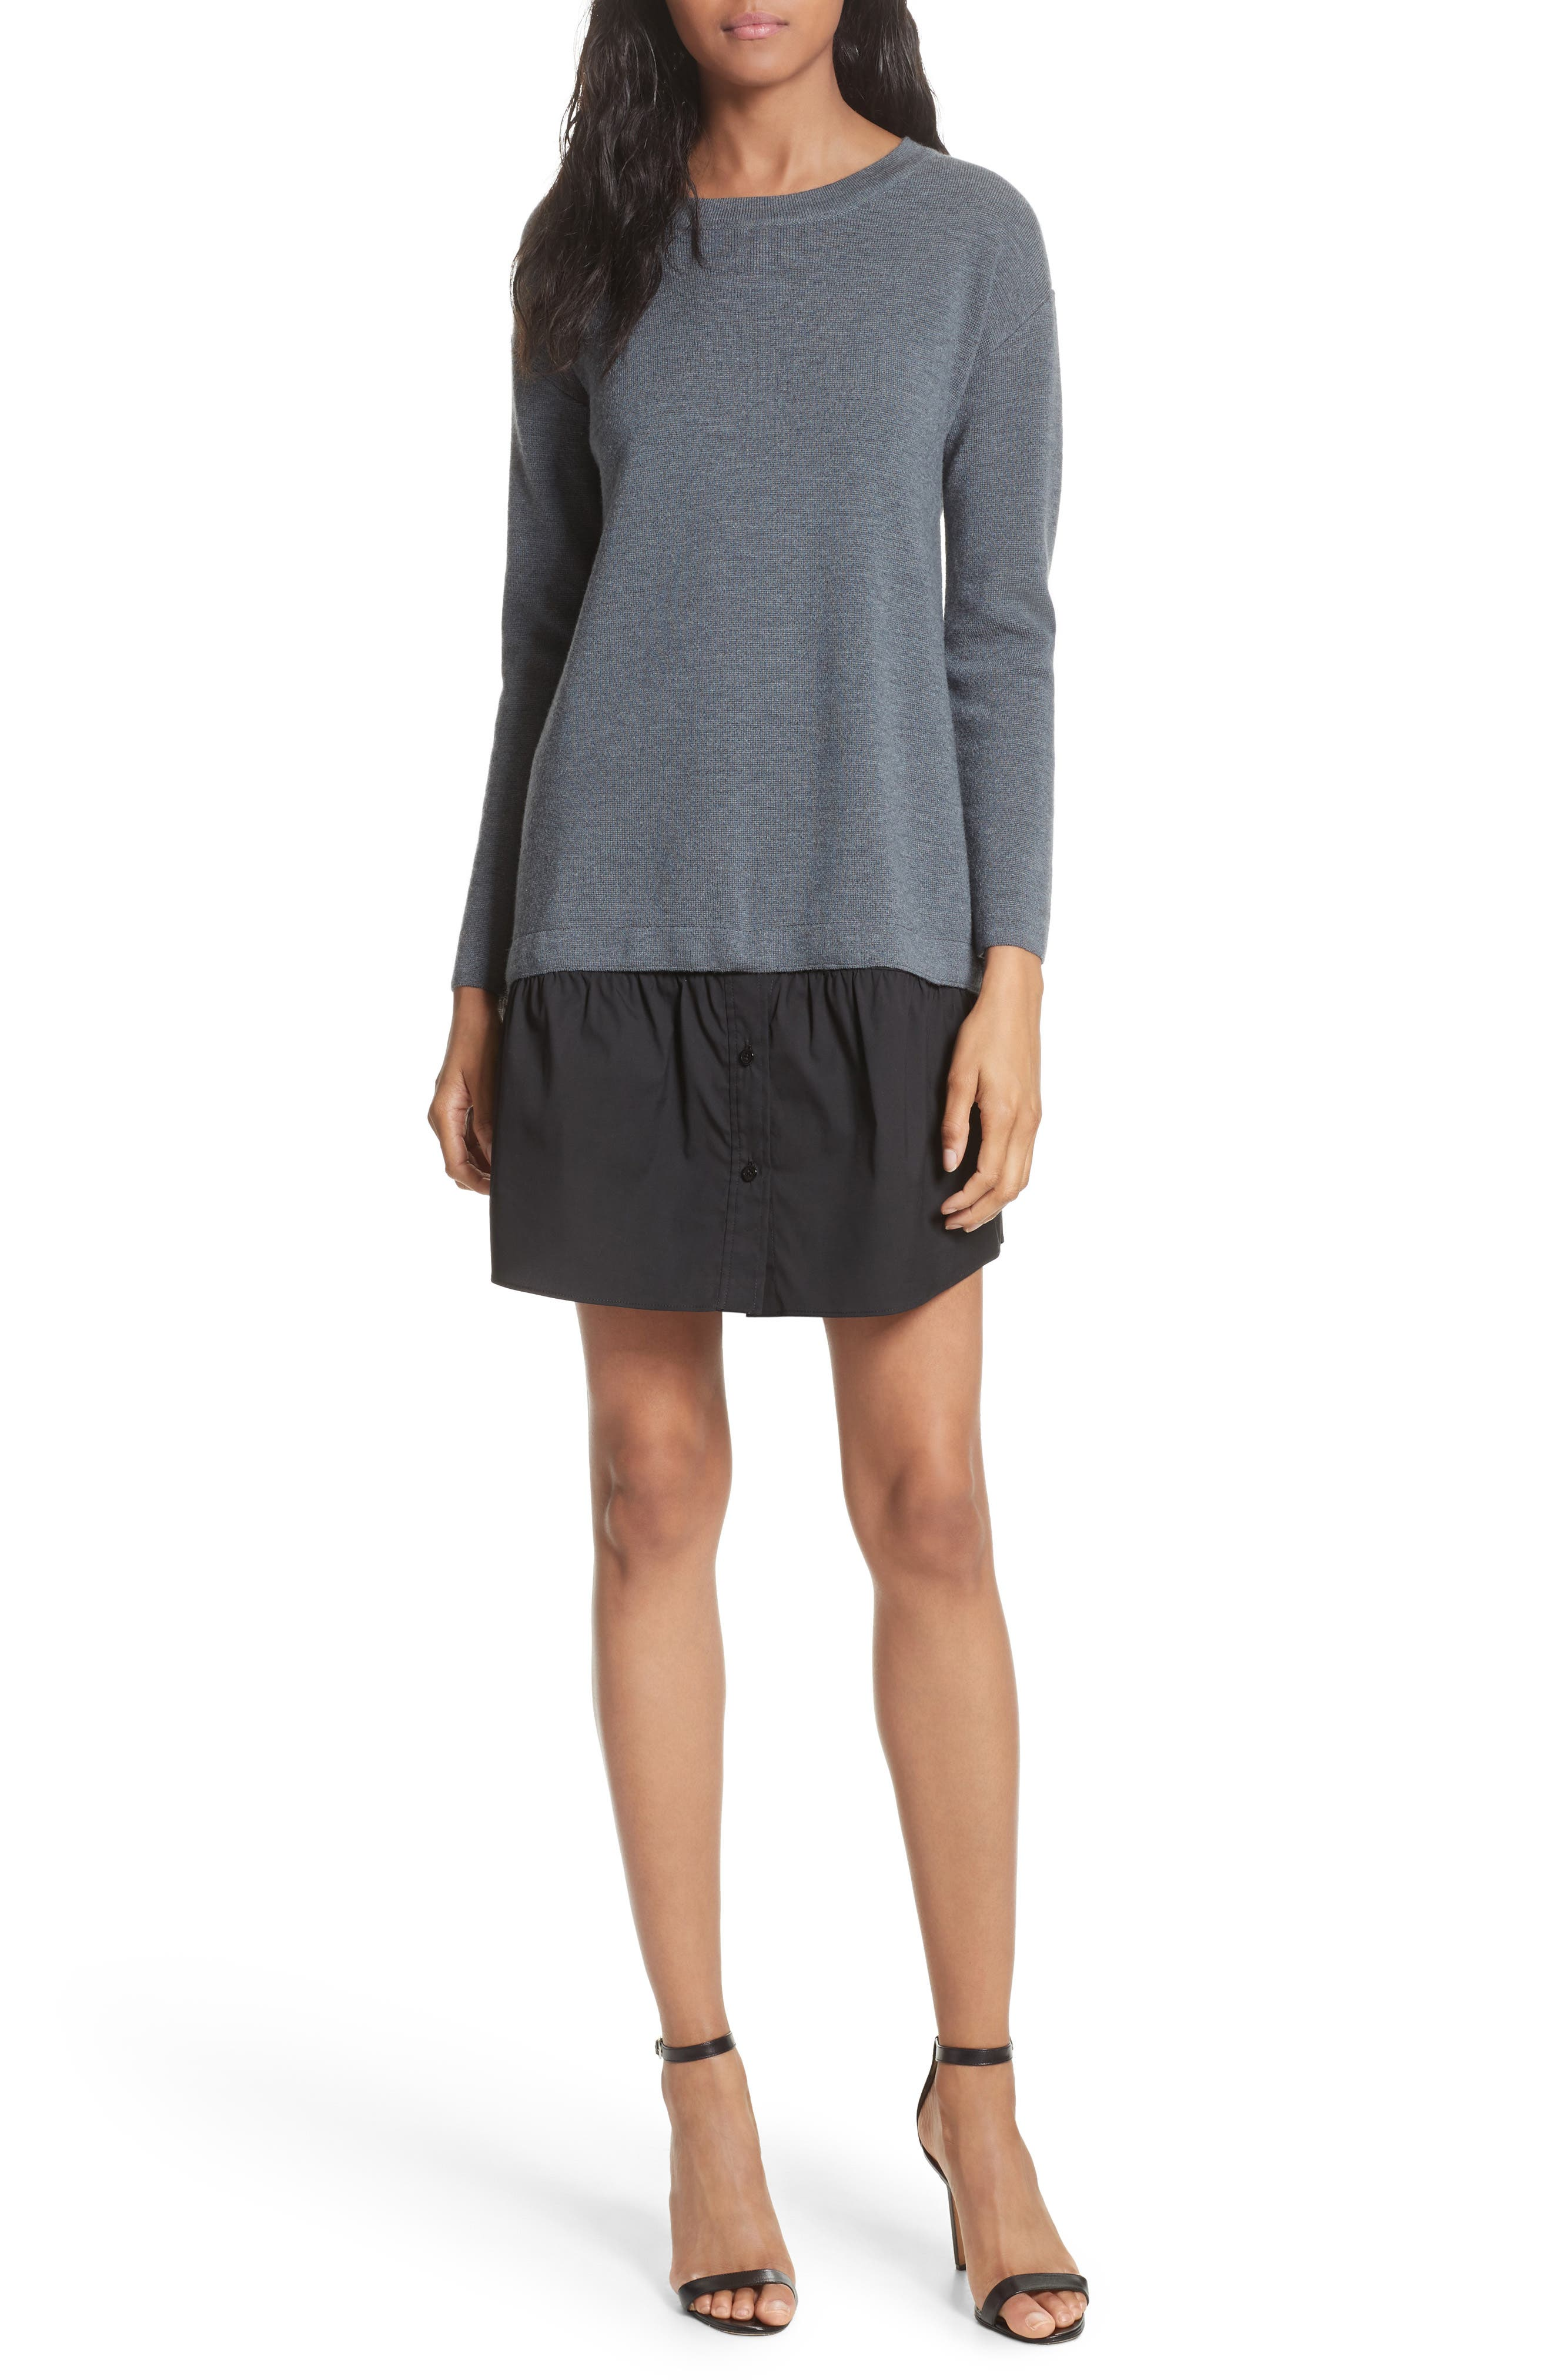 Milly 2-in-1 Sweater Dress